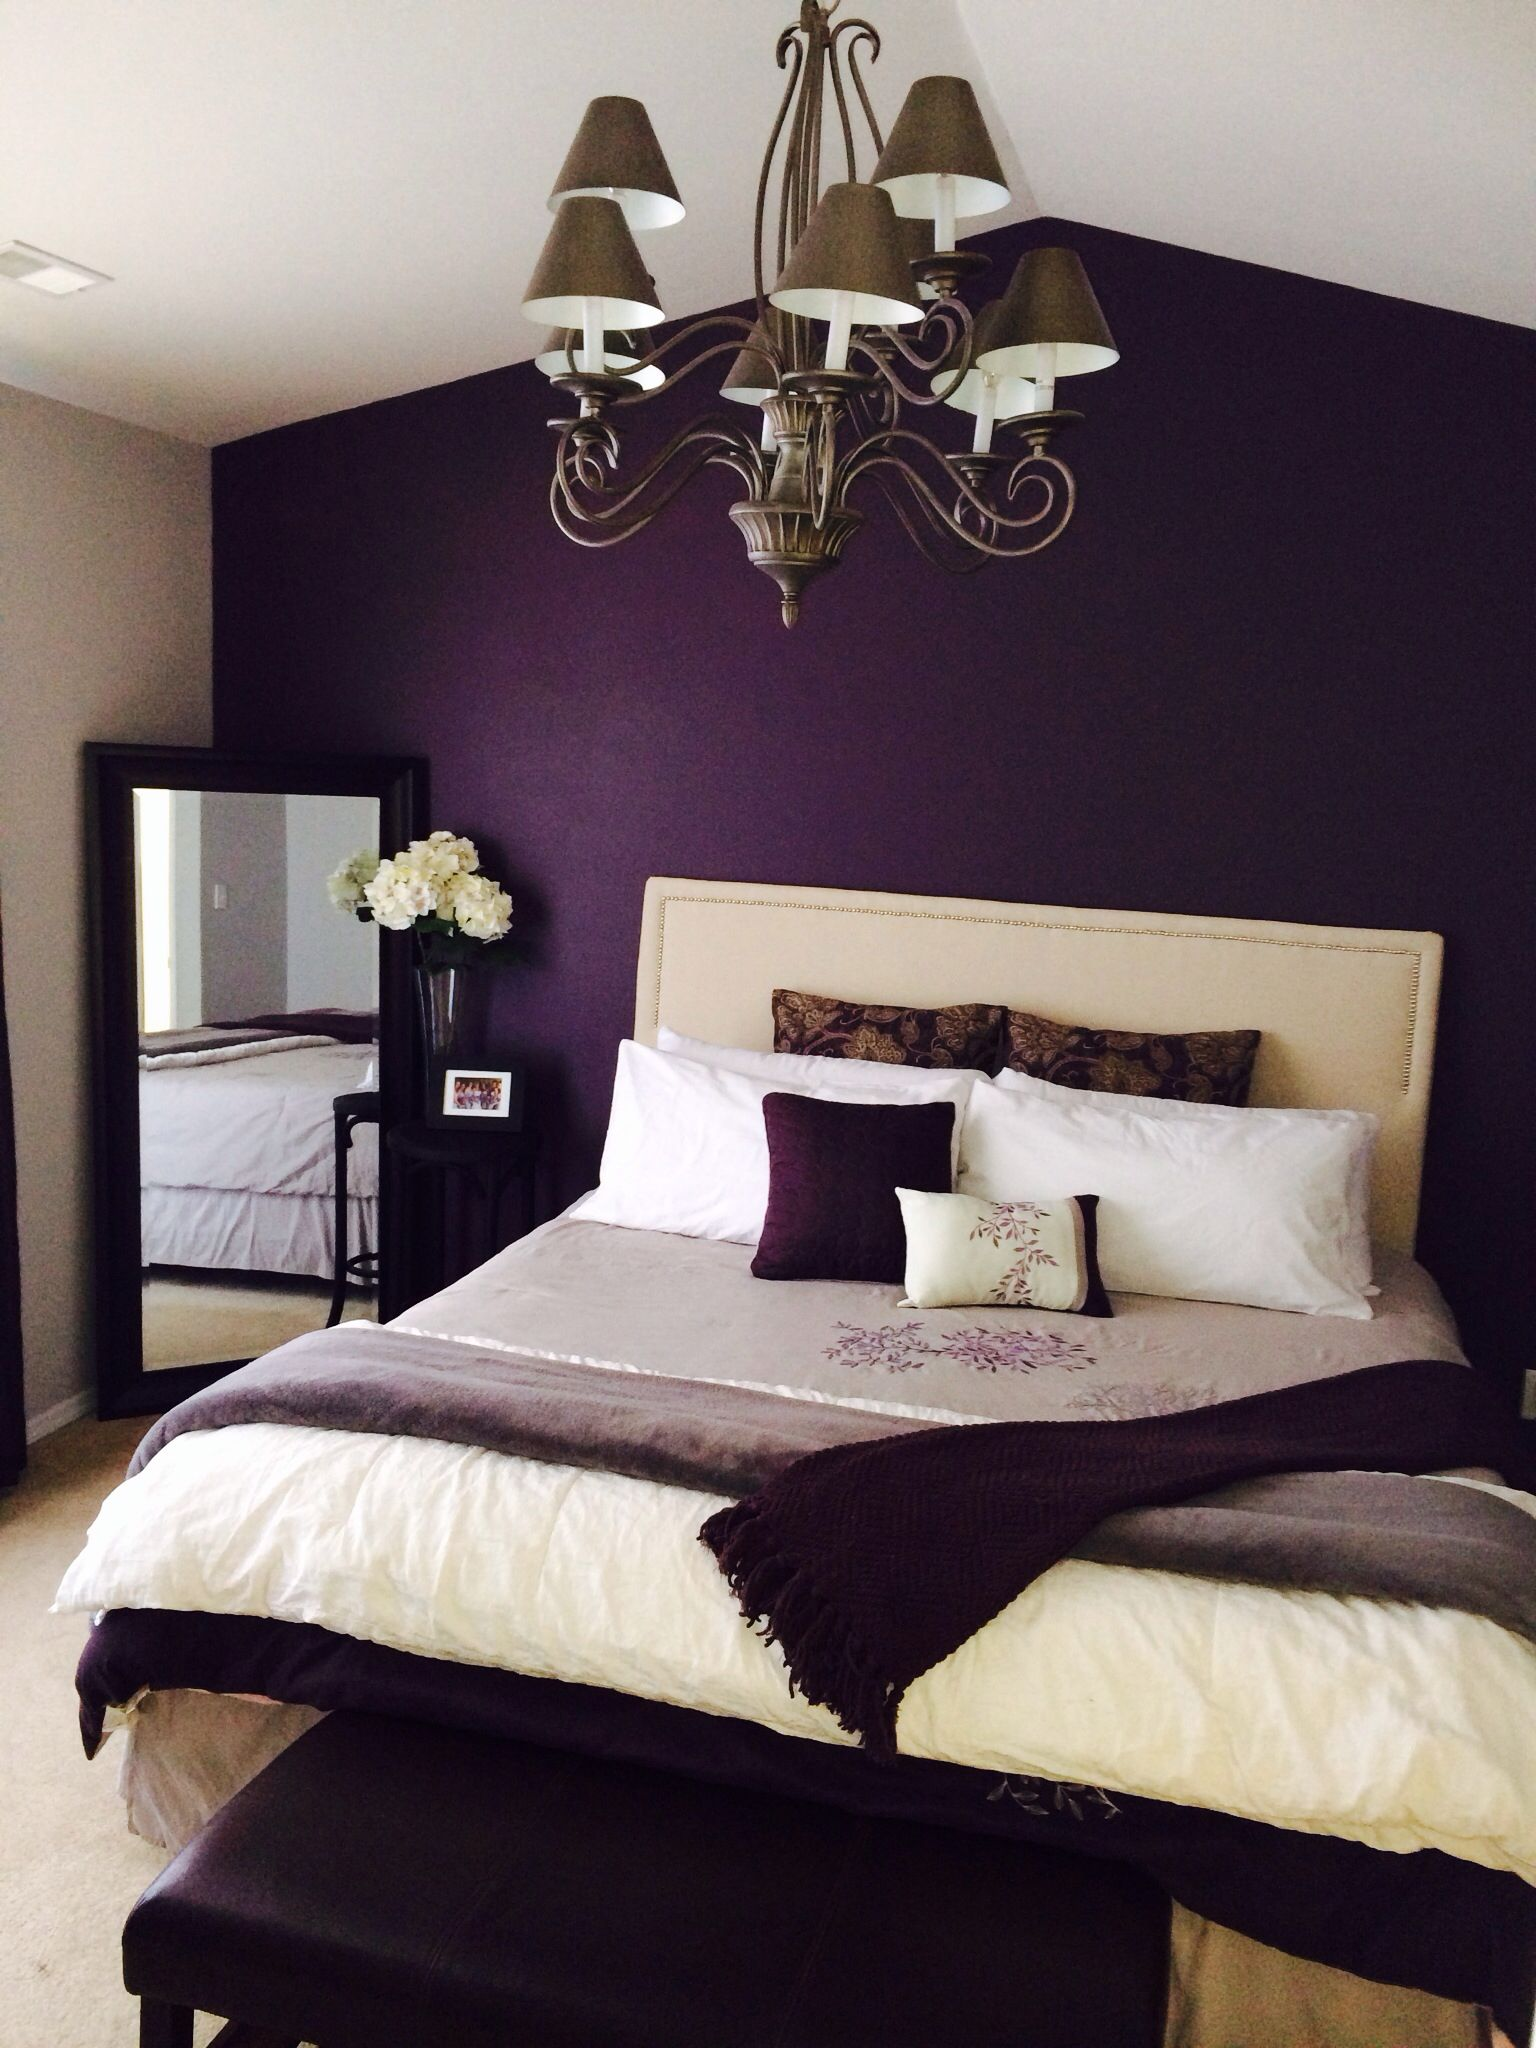 to wear - Black and Purple room ideas video